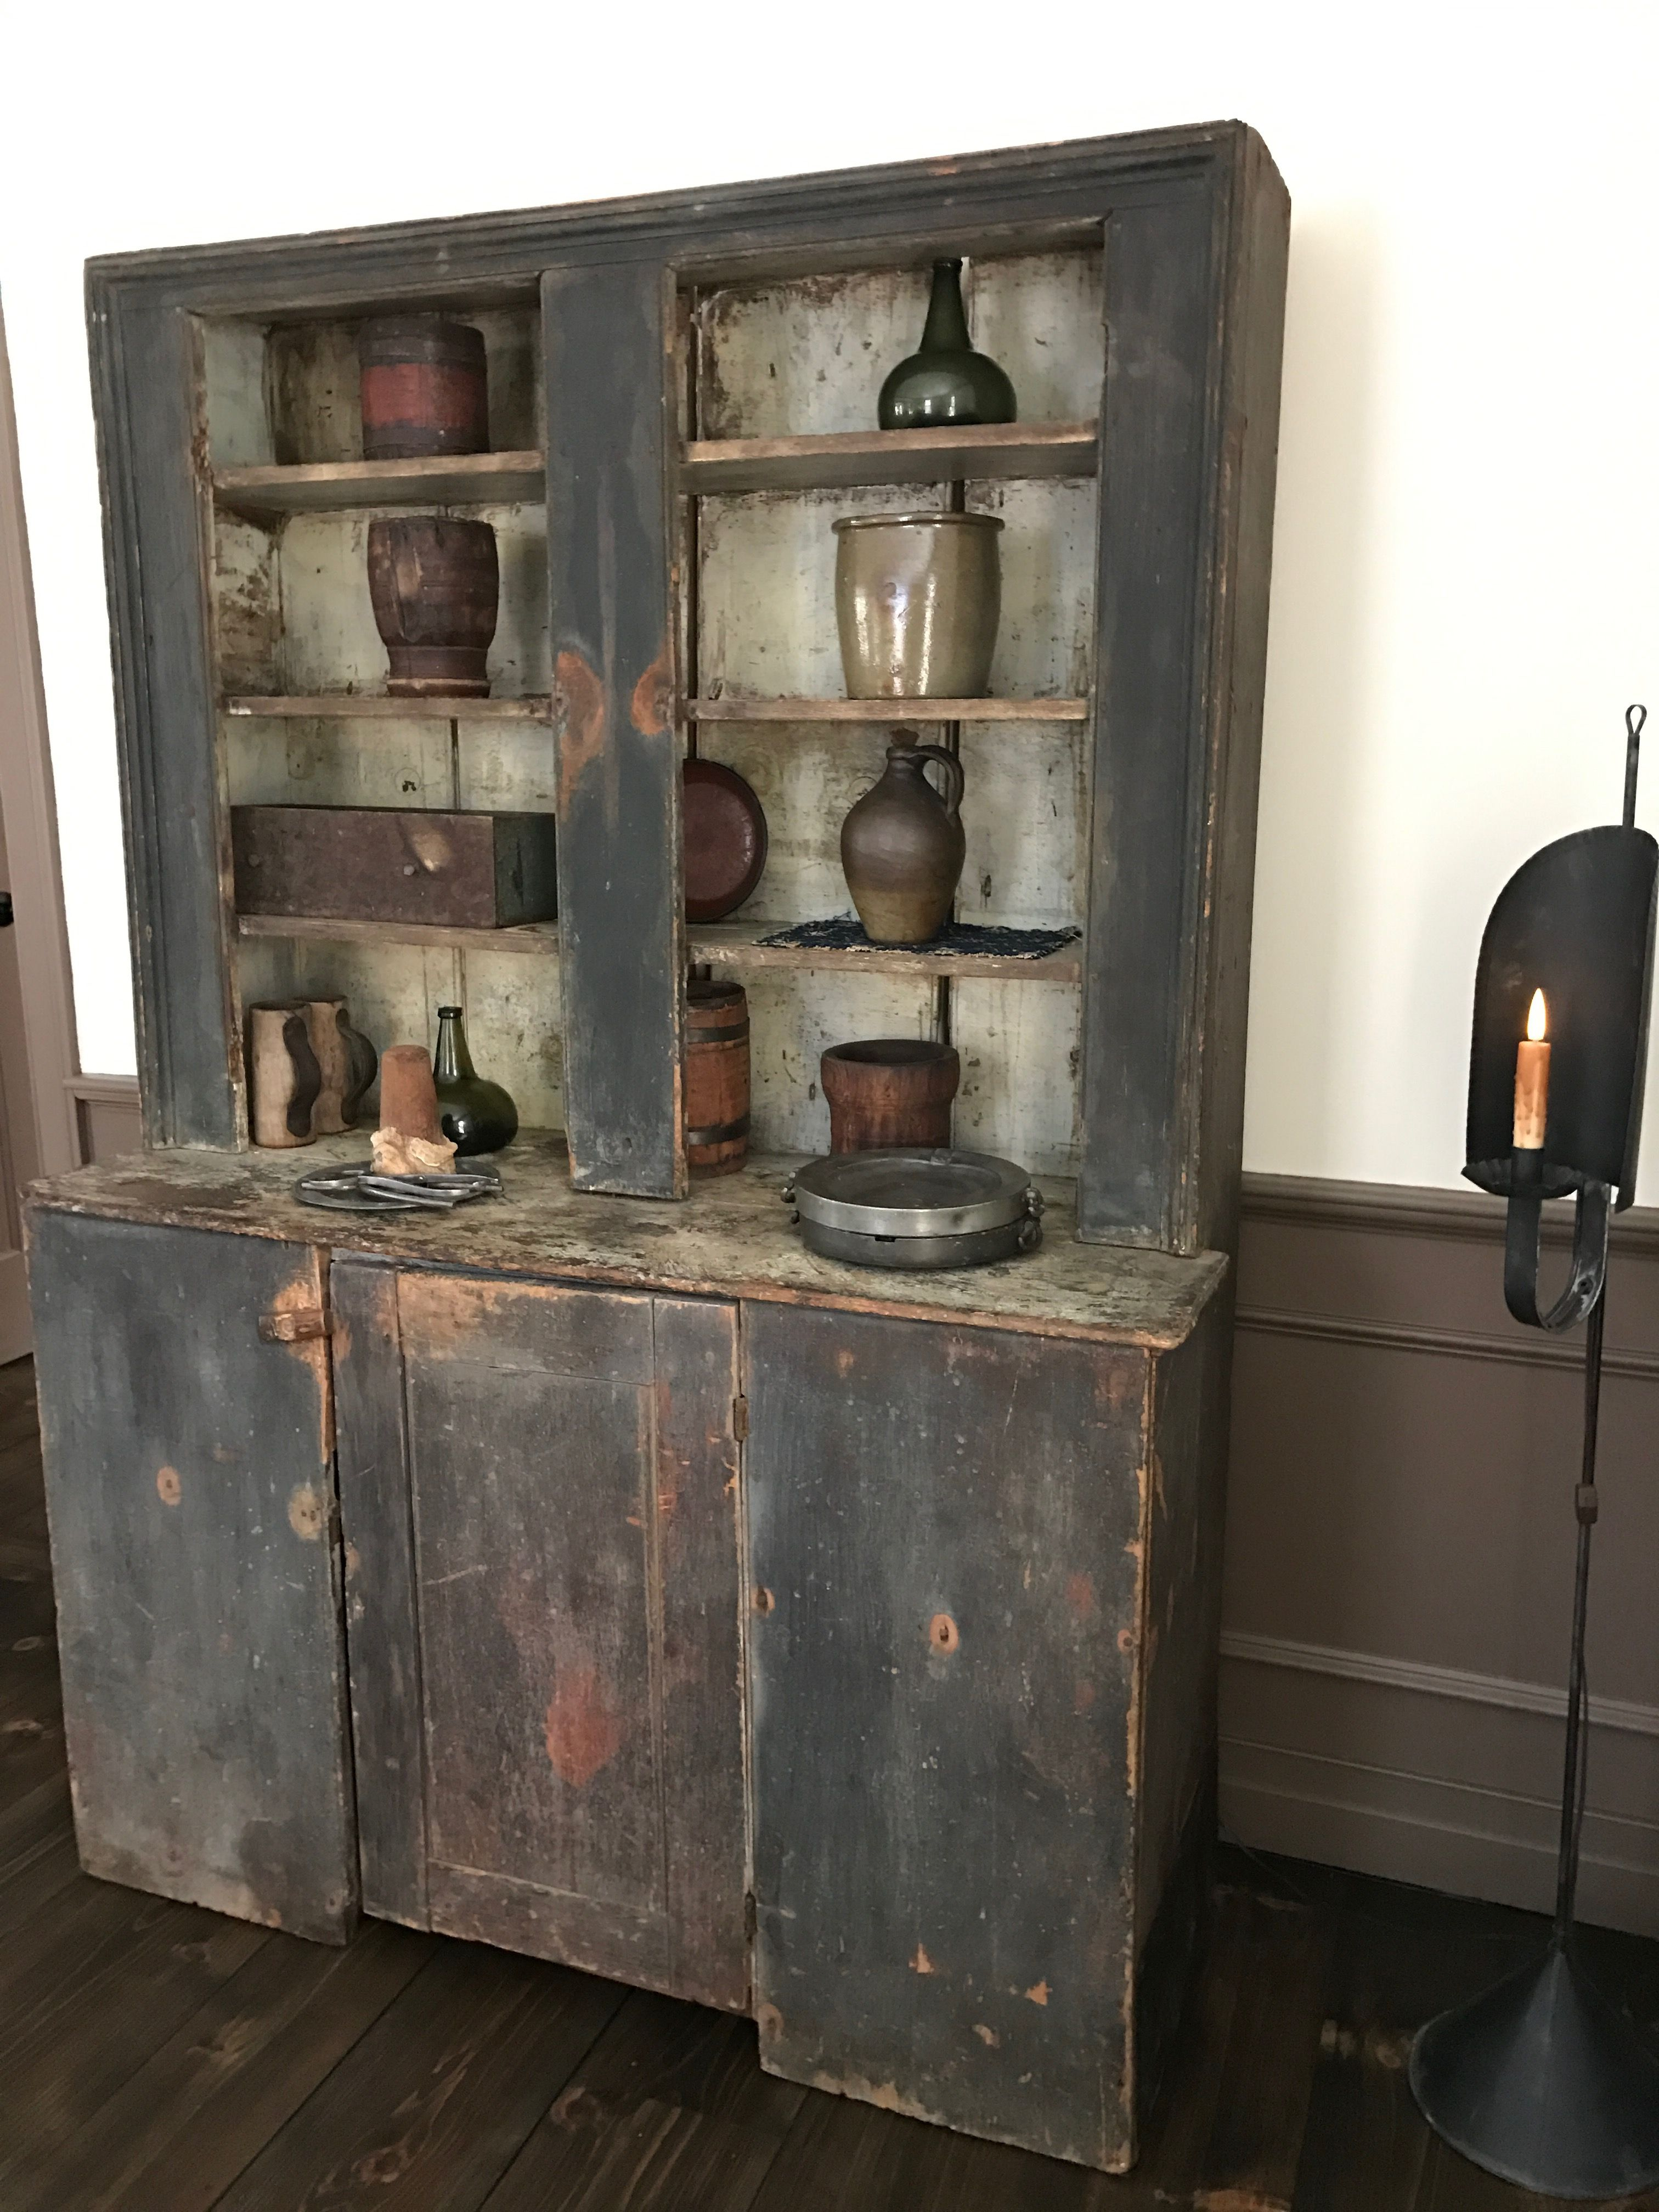 Pin By Janice Elderkin On Cupboards Primitive Cabinets Primitive Furniture Primitive Homes